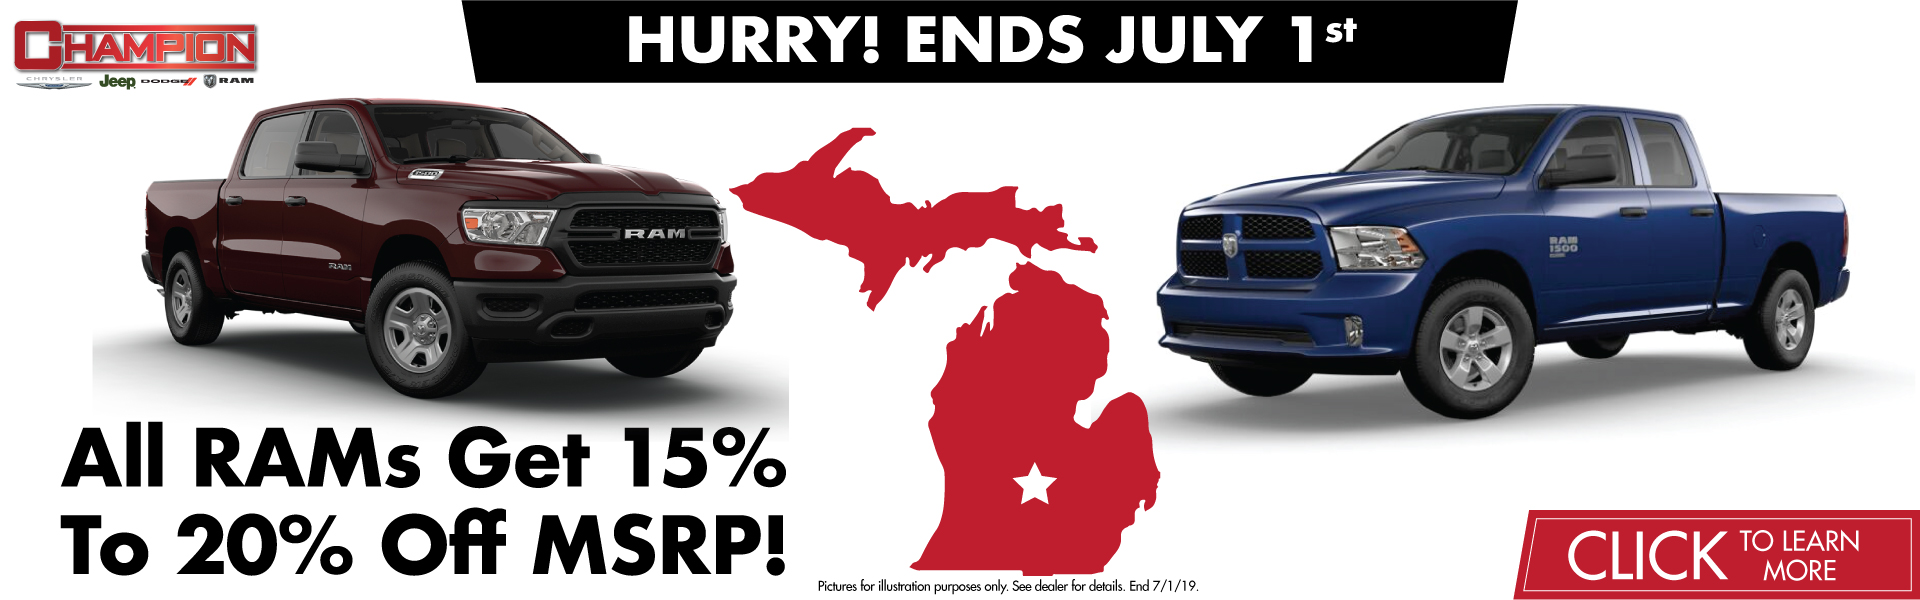 Ends July 1st. 15% off MSRP for 1500LD DS & DT and 20% off for 2019 Ram 1500 LD DT